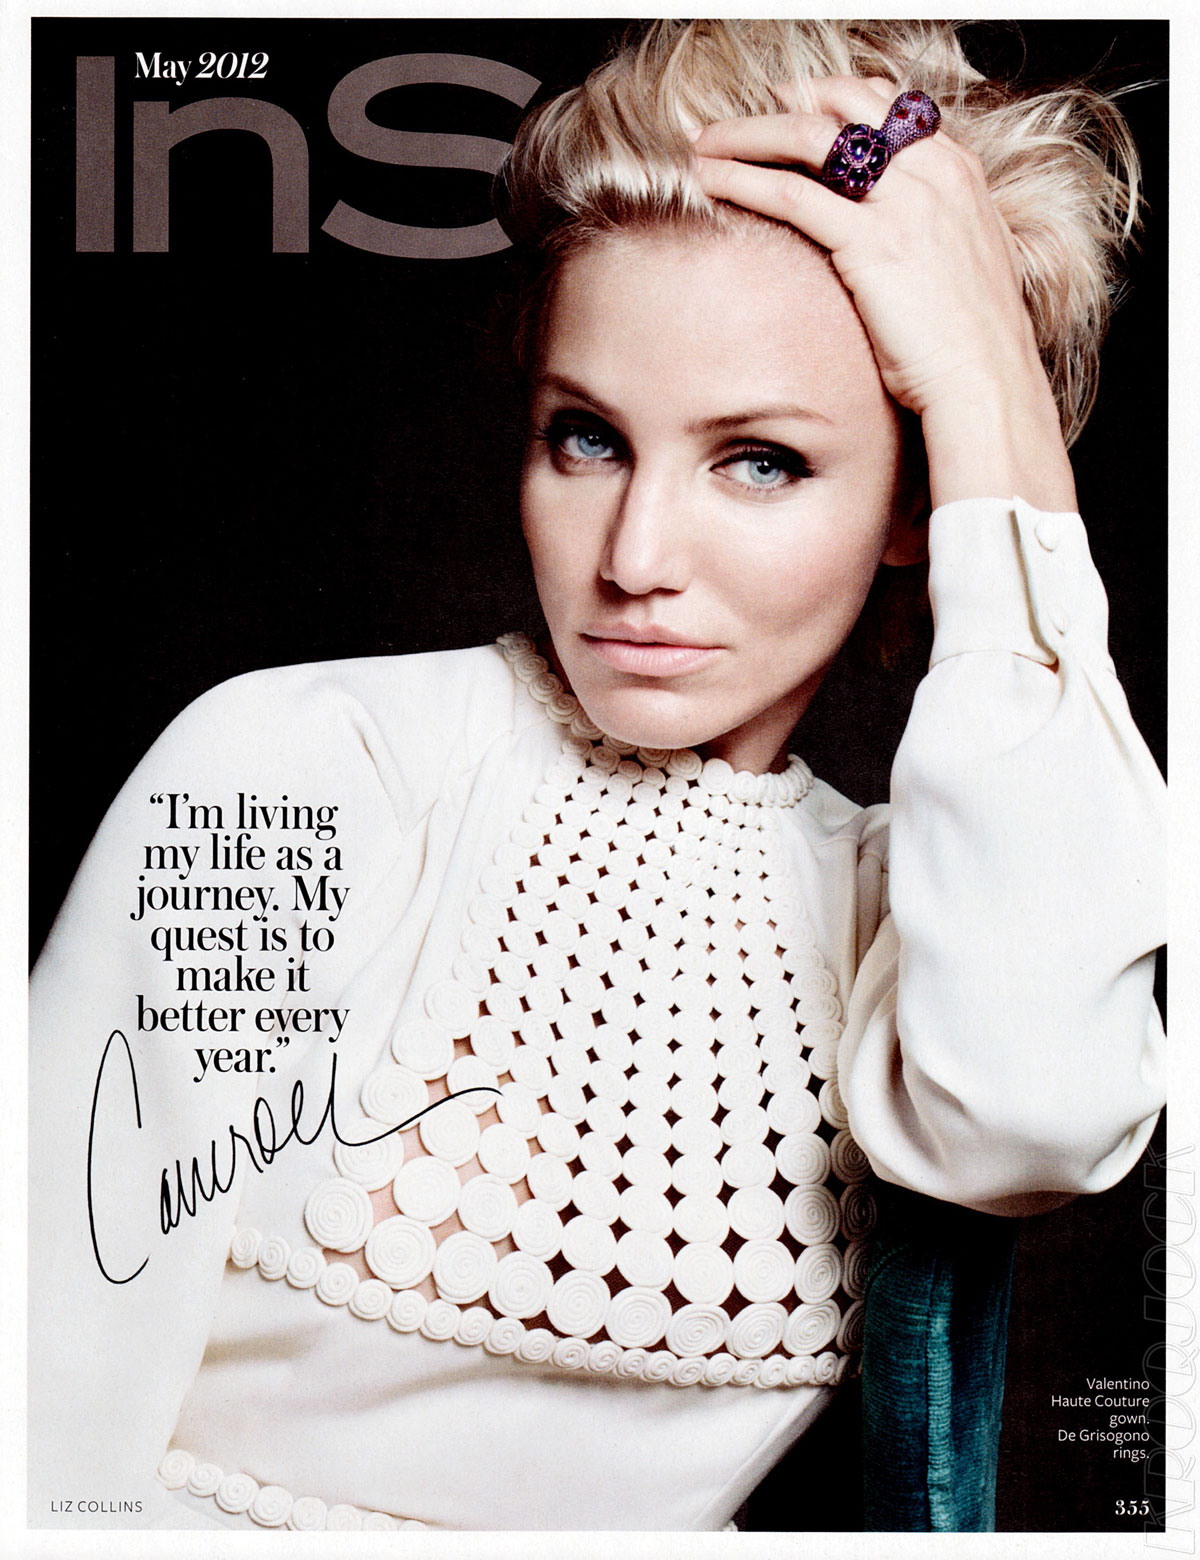 CAMERON DIAZ in InStyle Magazine May 2012 Issue 9